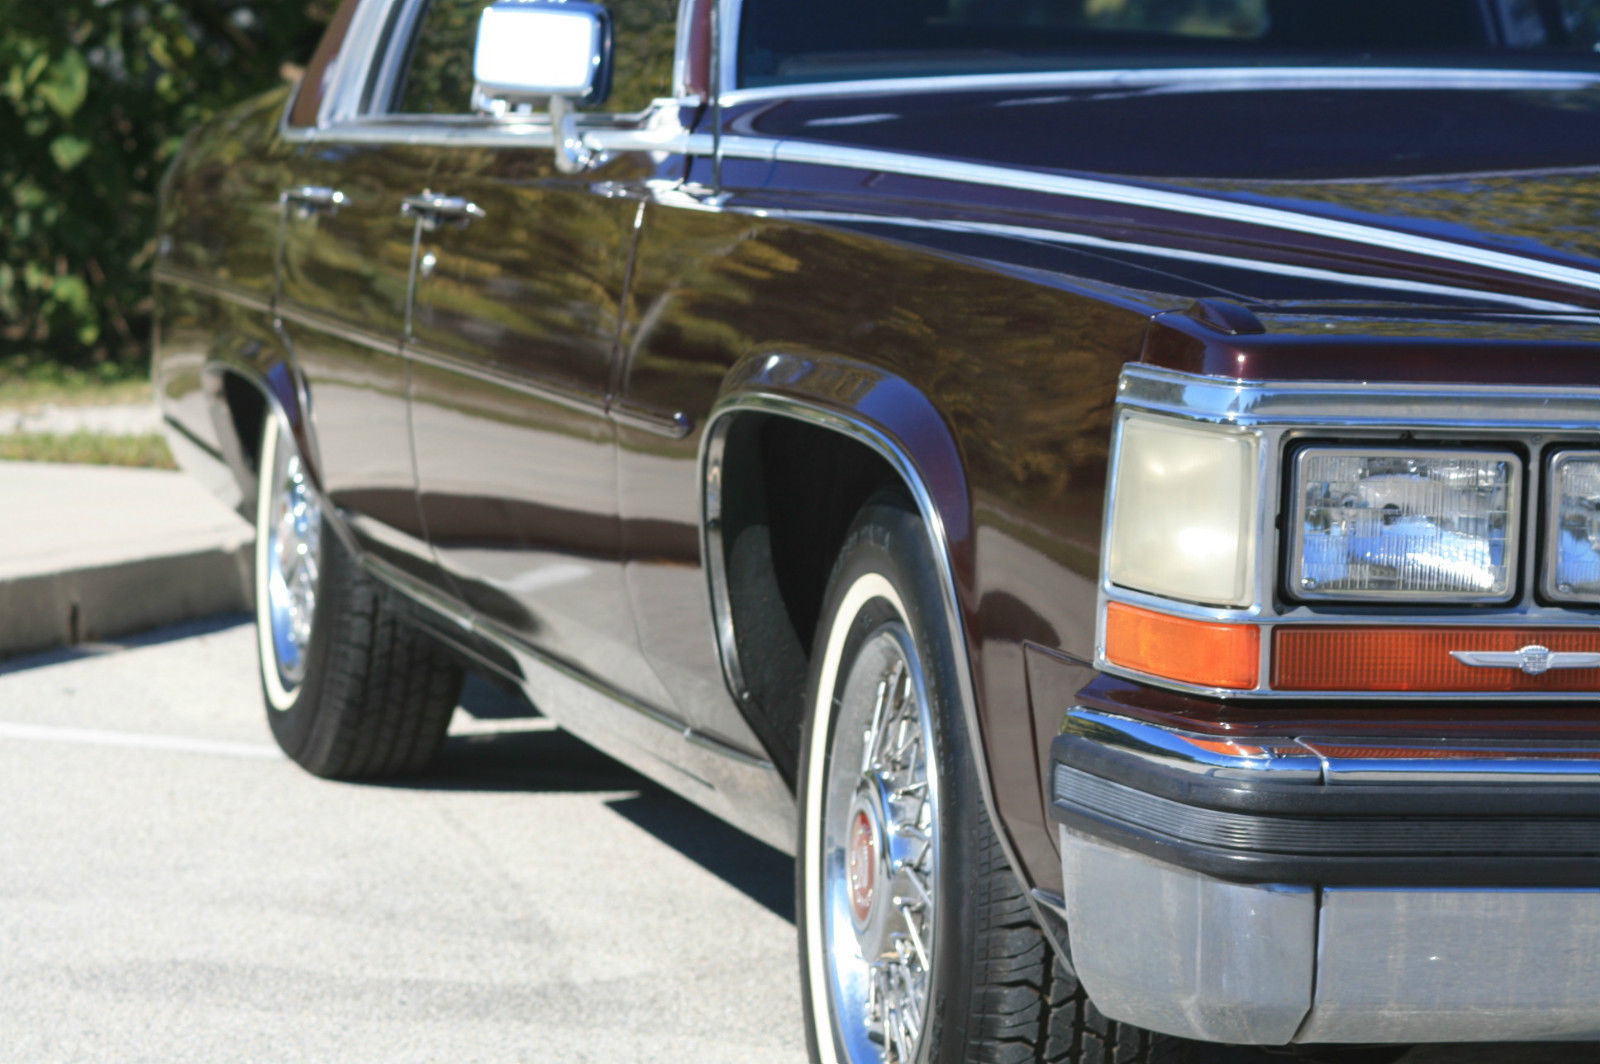 BARN SALE MUST SELL NOW OVER 50 CARS 1987 CADILLAC BROUGHAM